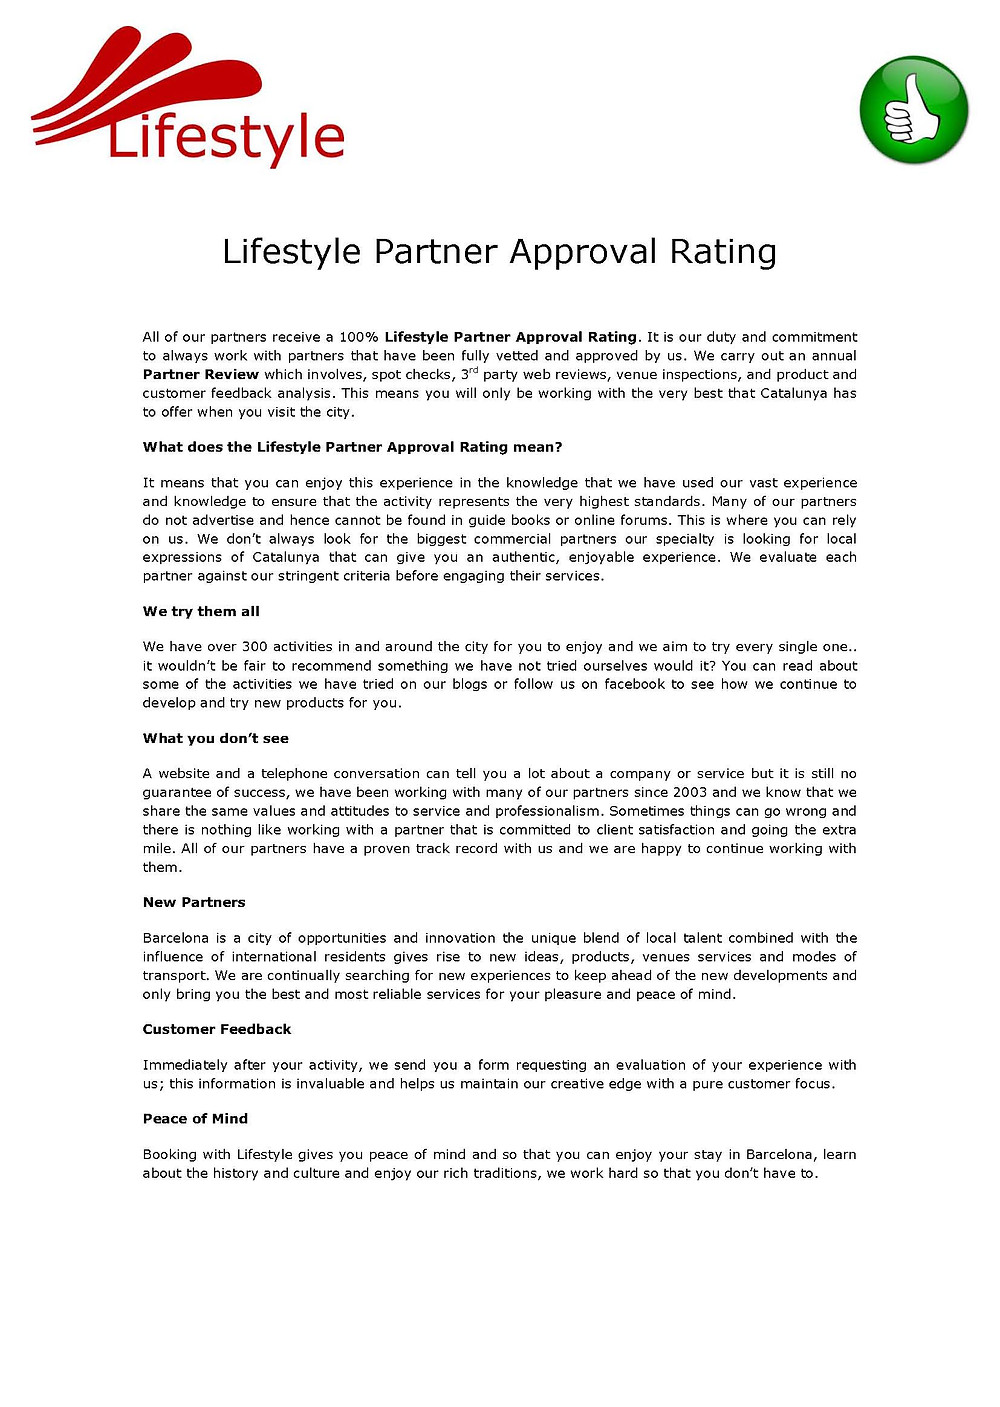 Lifestyle Partner Approval Rating